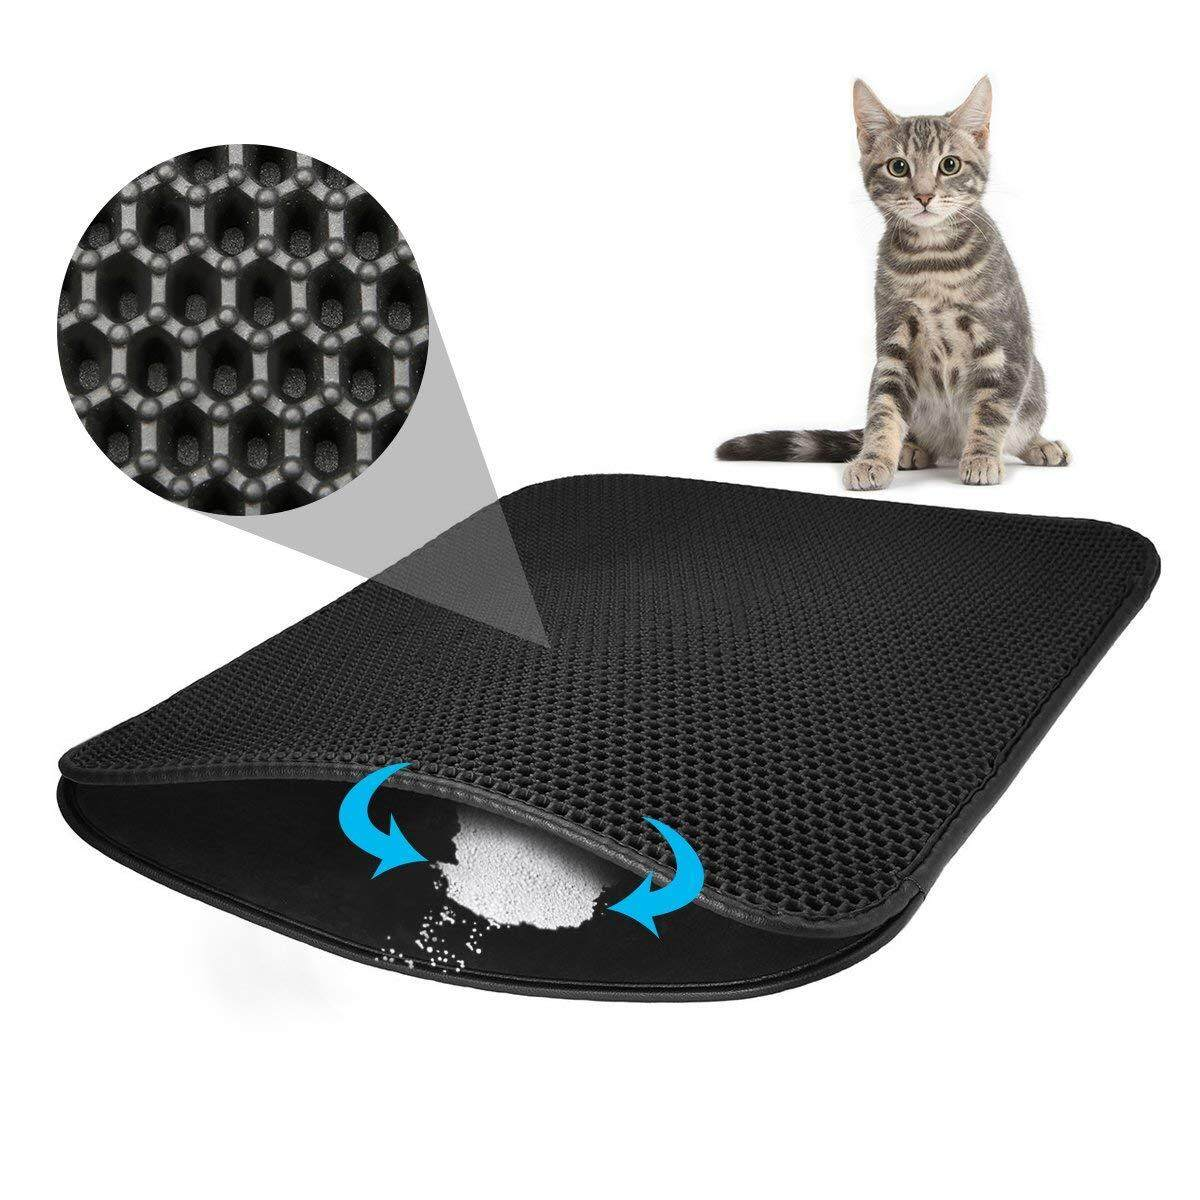 Dustbin Pad, Cat Litter Mat 75x 55cm Trash Can Pad Honeycomb Design Trash Can Carpet Waterproof Double Layer Design Honeycomb Cat Litter Mat Black By Benefitwen.